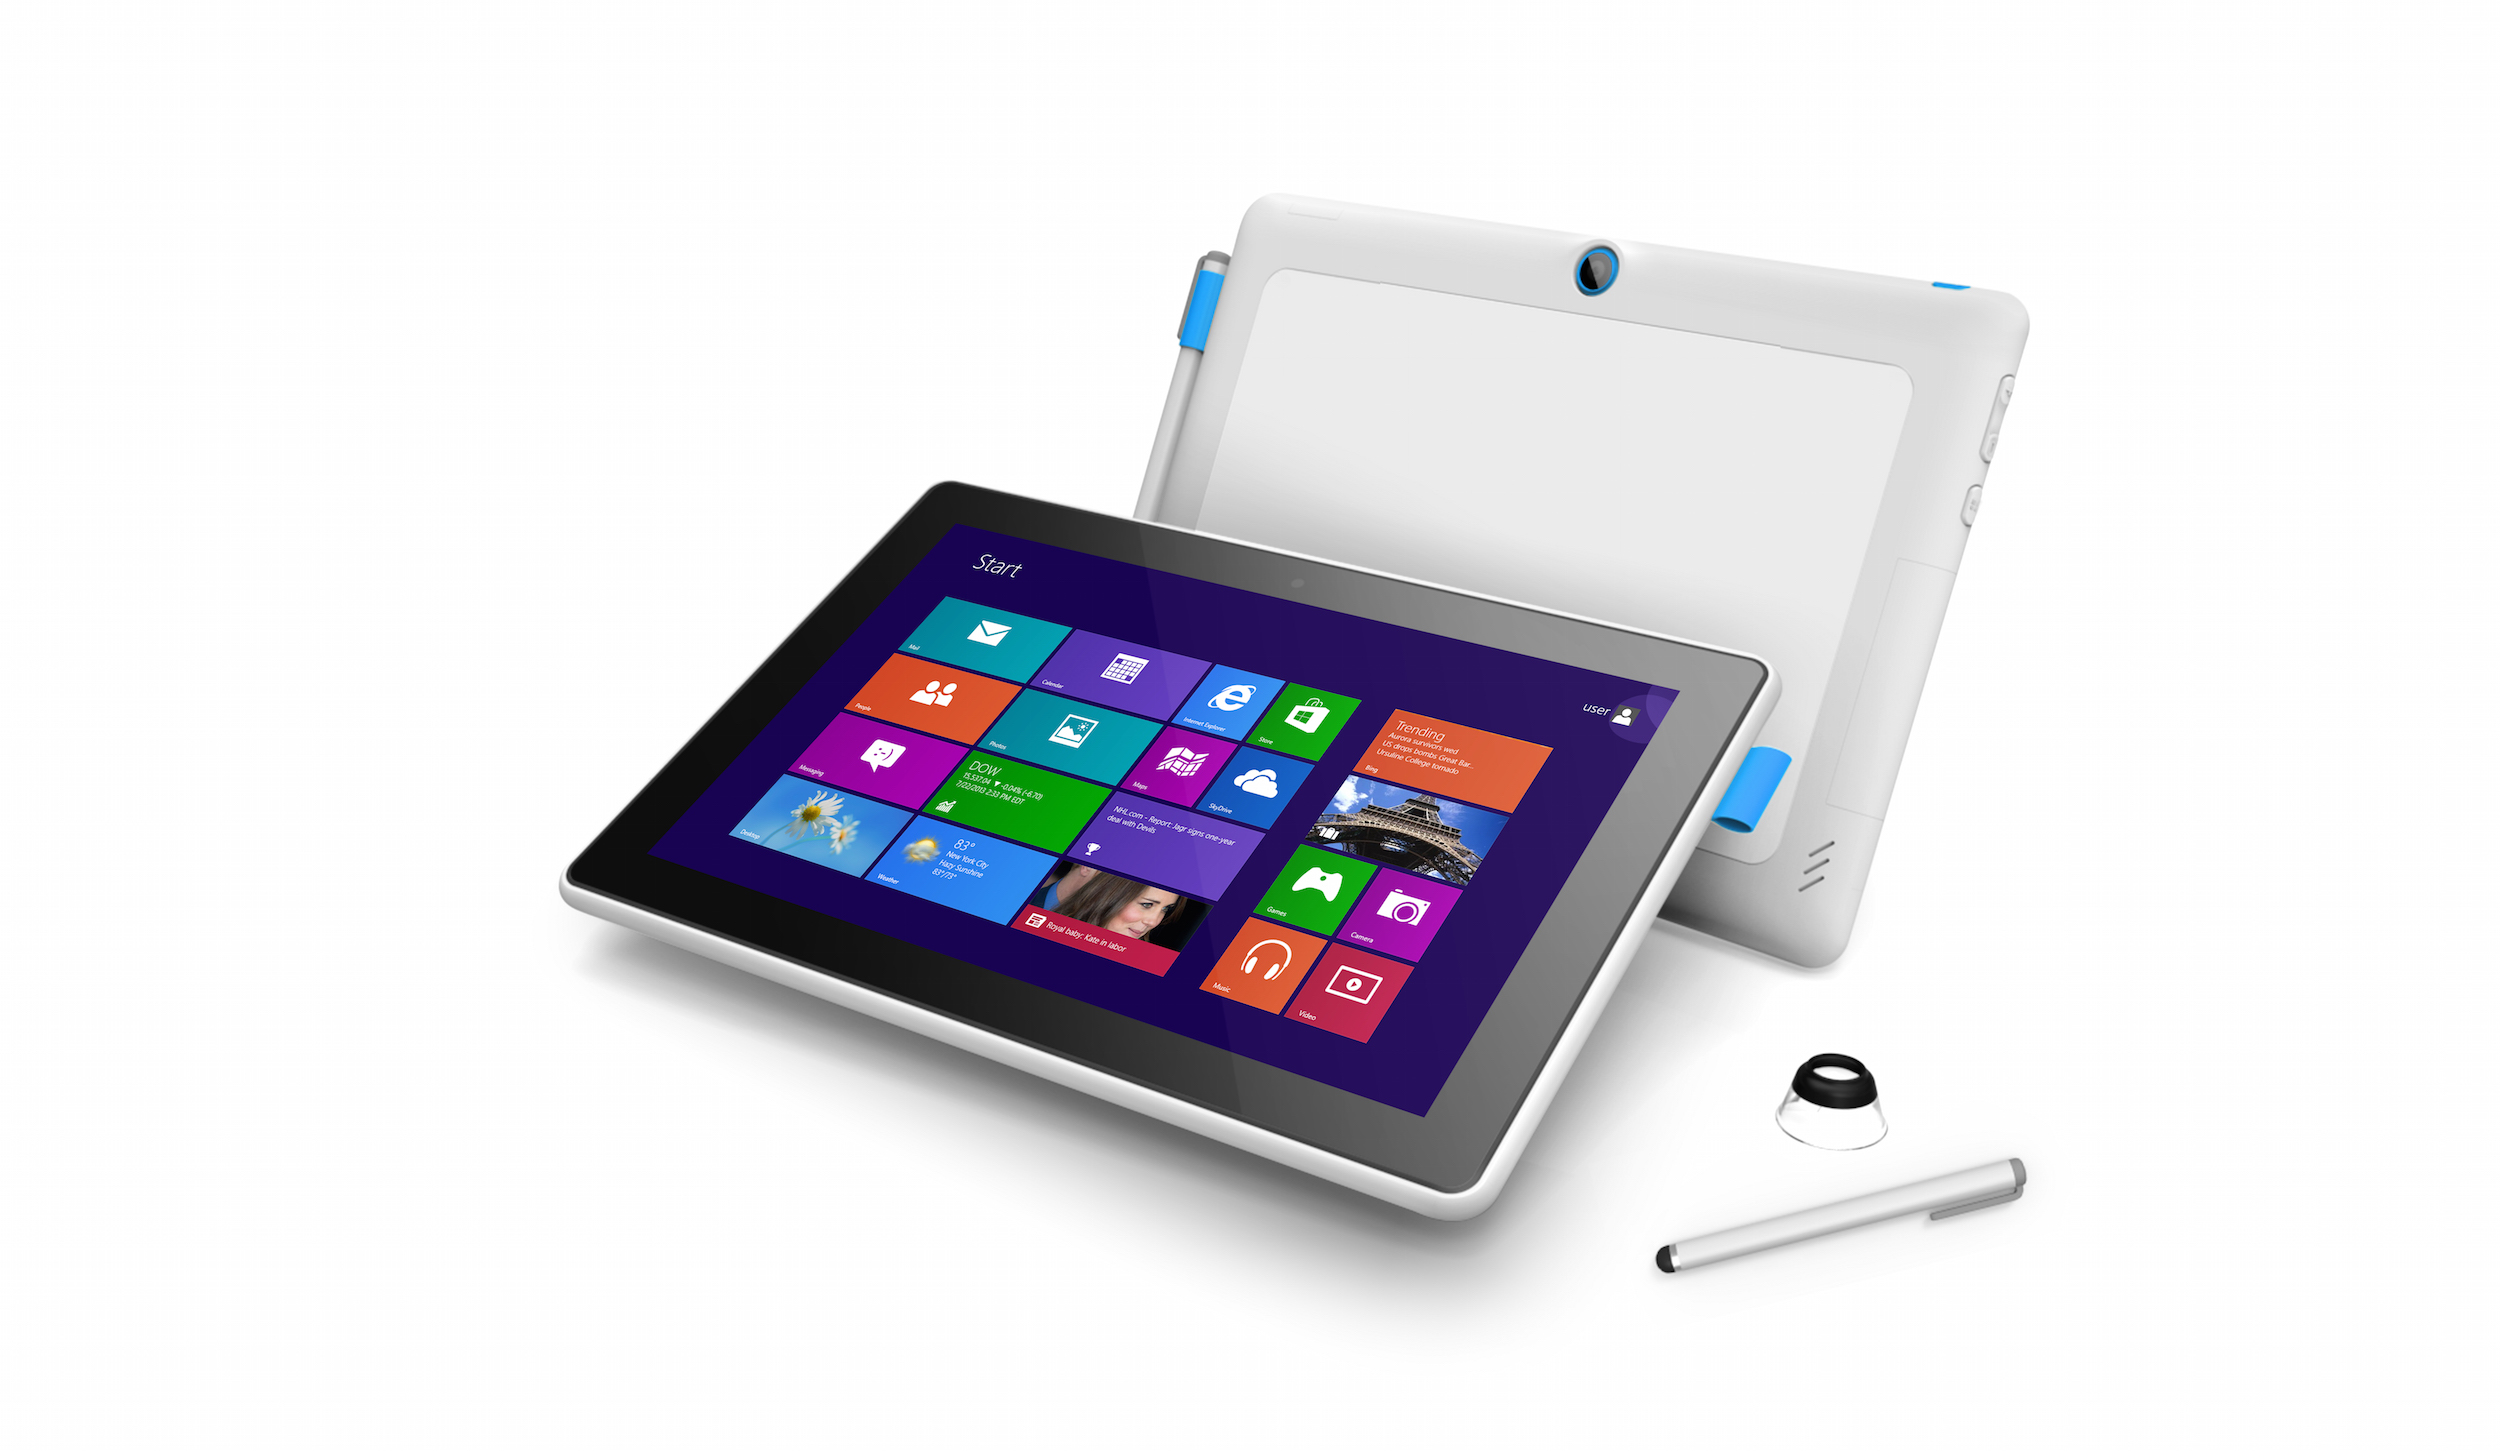 Mecer Xpress Executive Series Classmate WEI11012-WIFI Windows Tablet